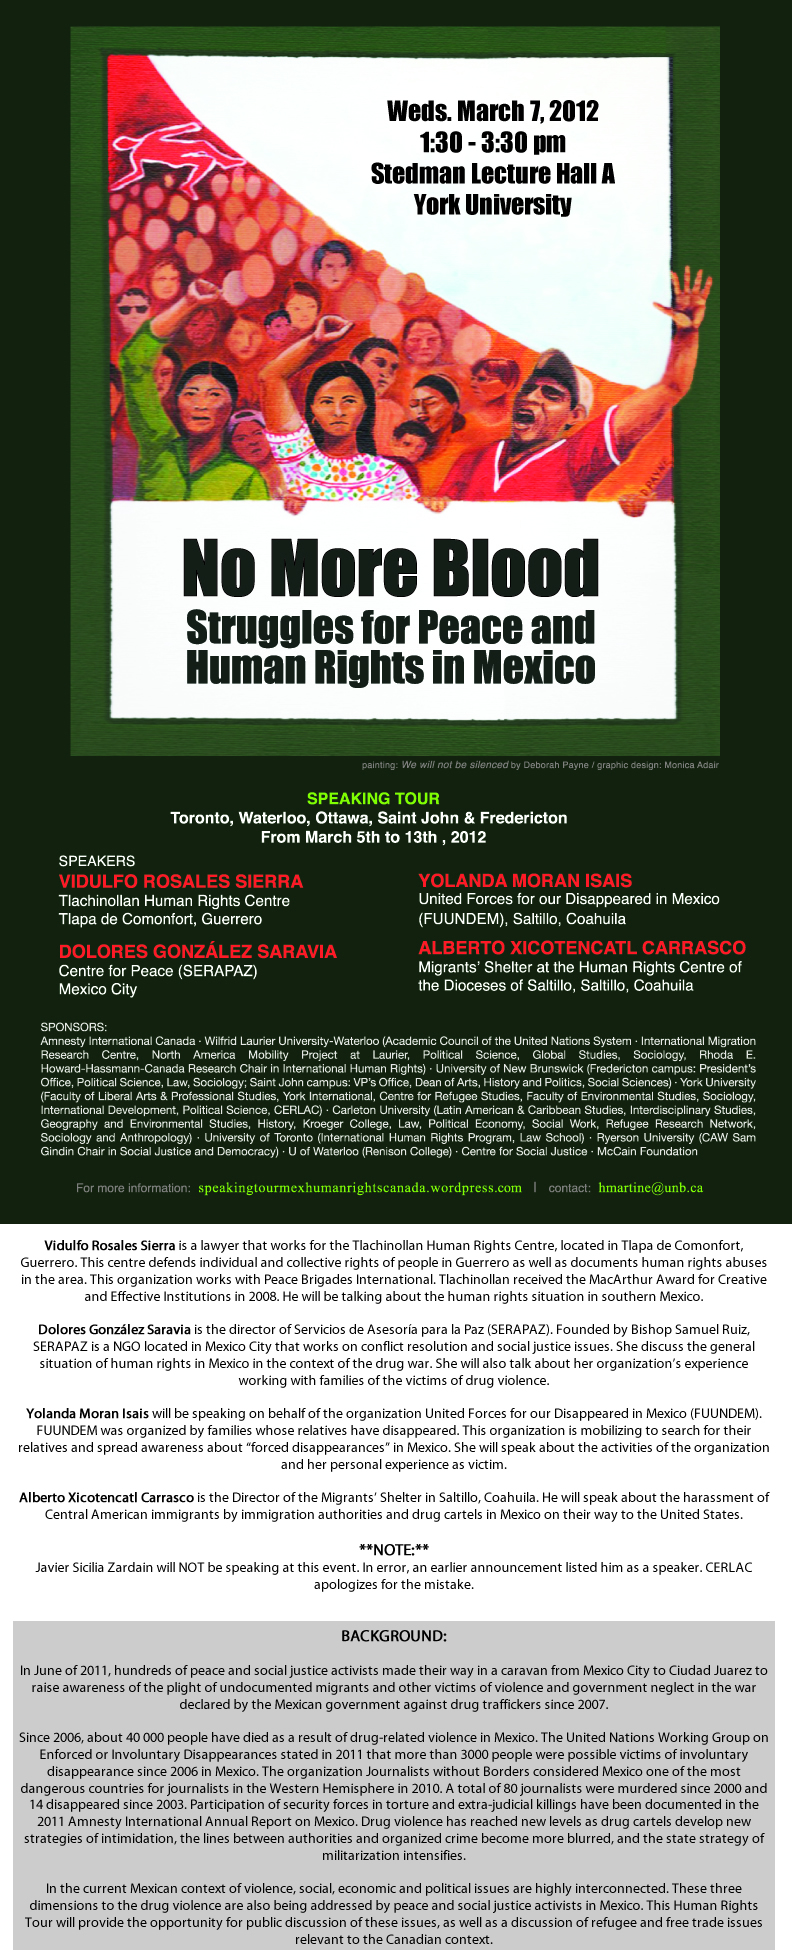 No More Blood Struggles for Peace & Human Rights in Mexico